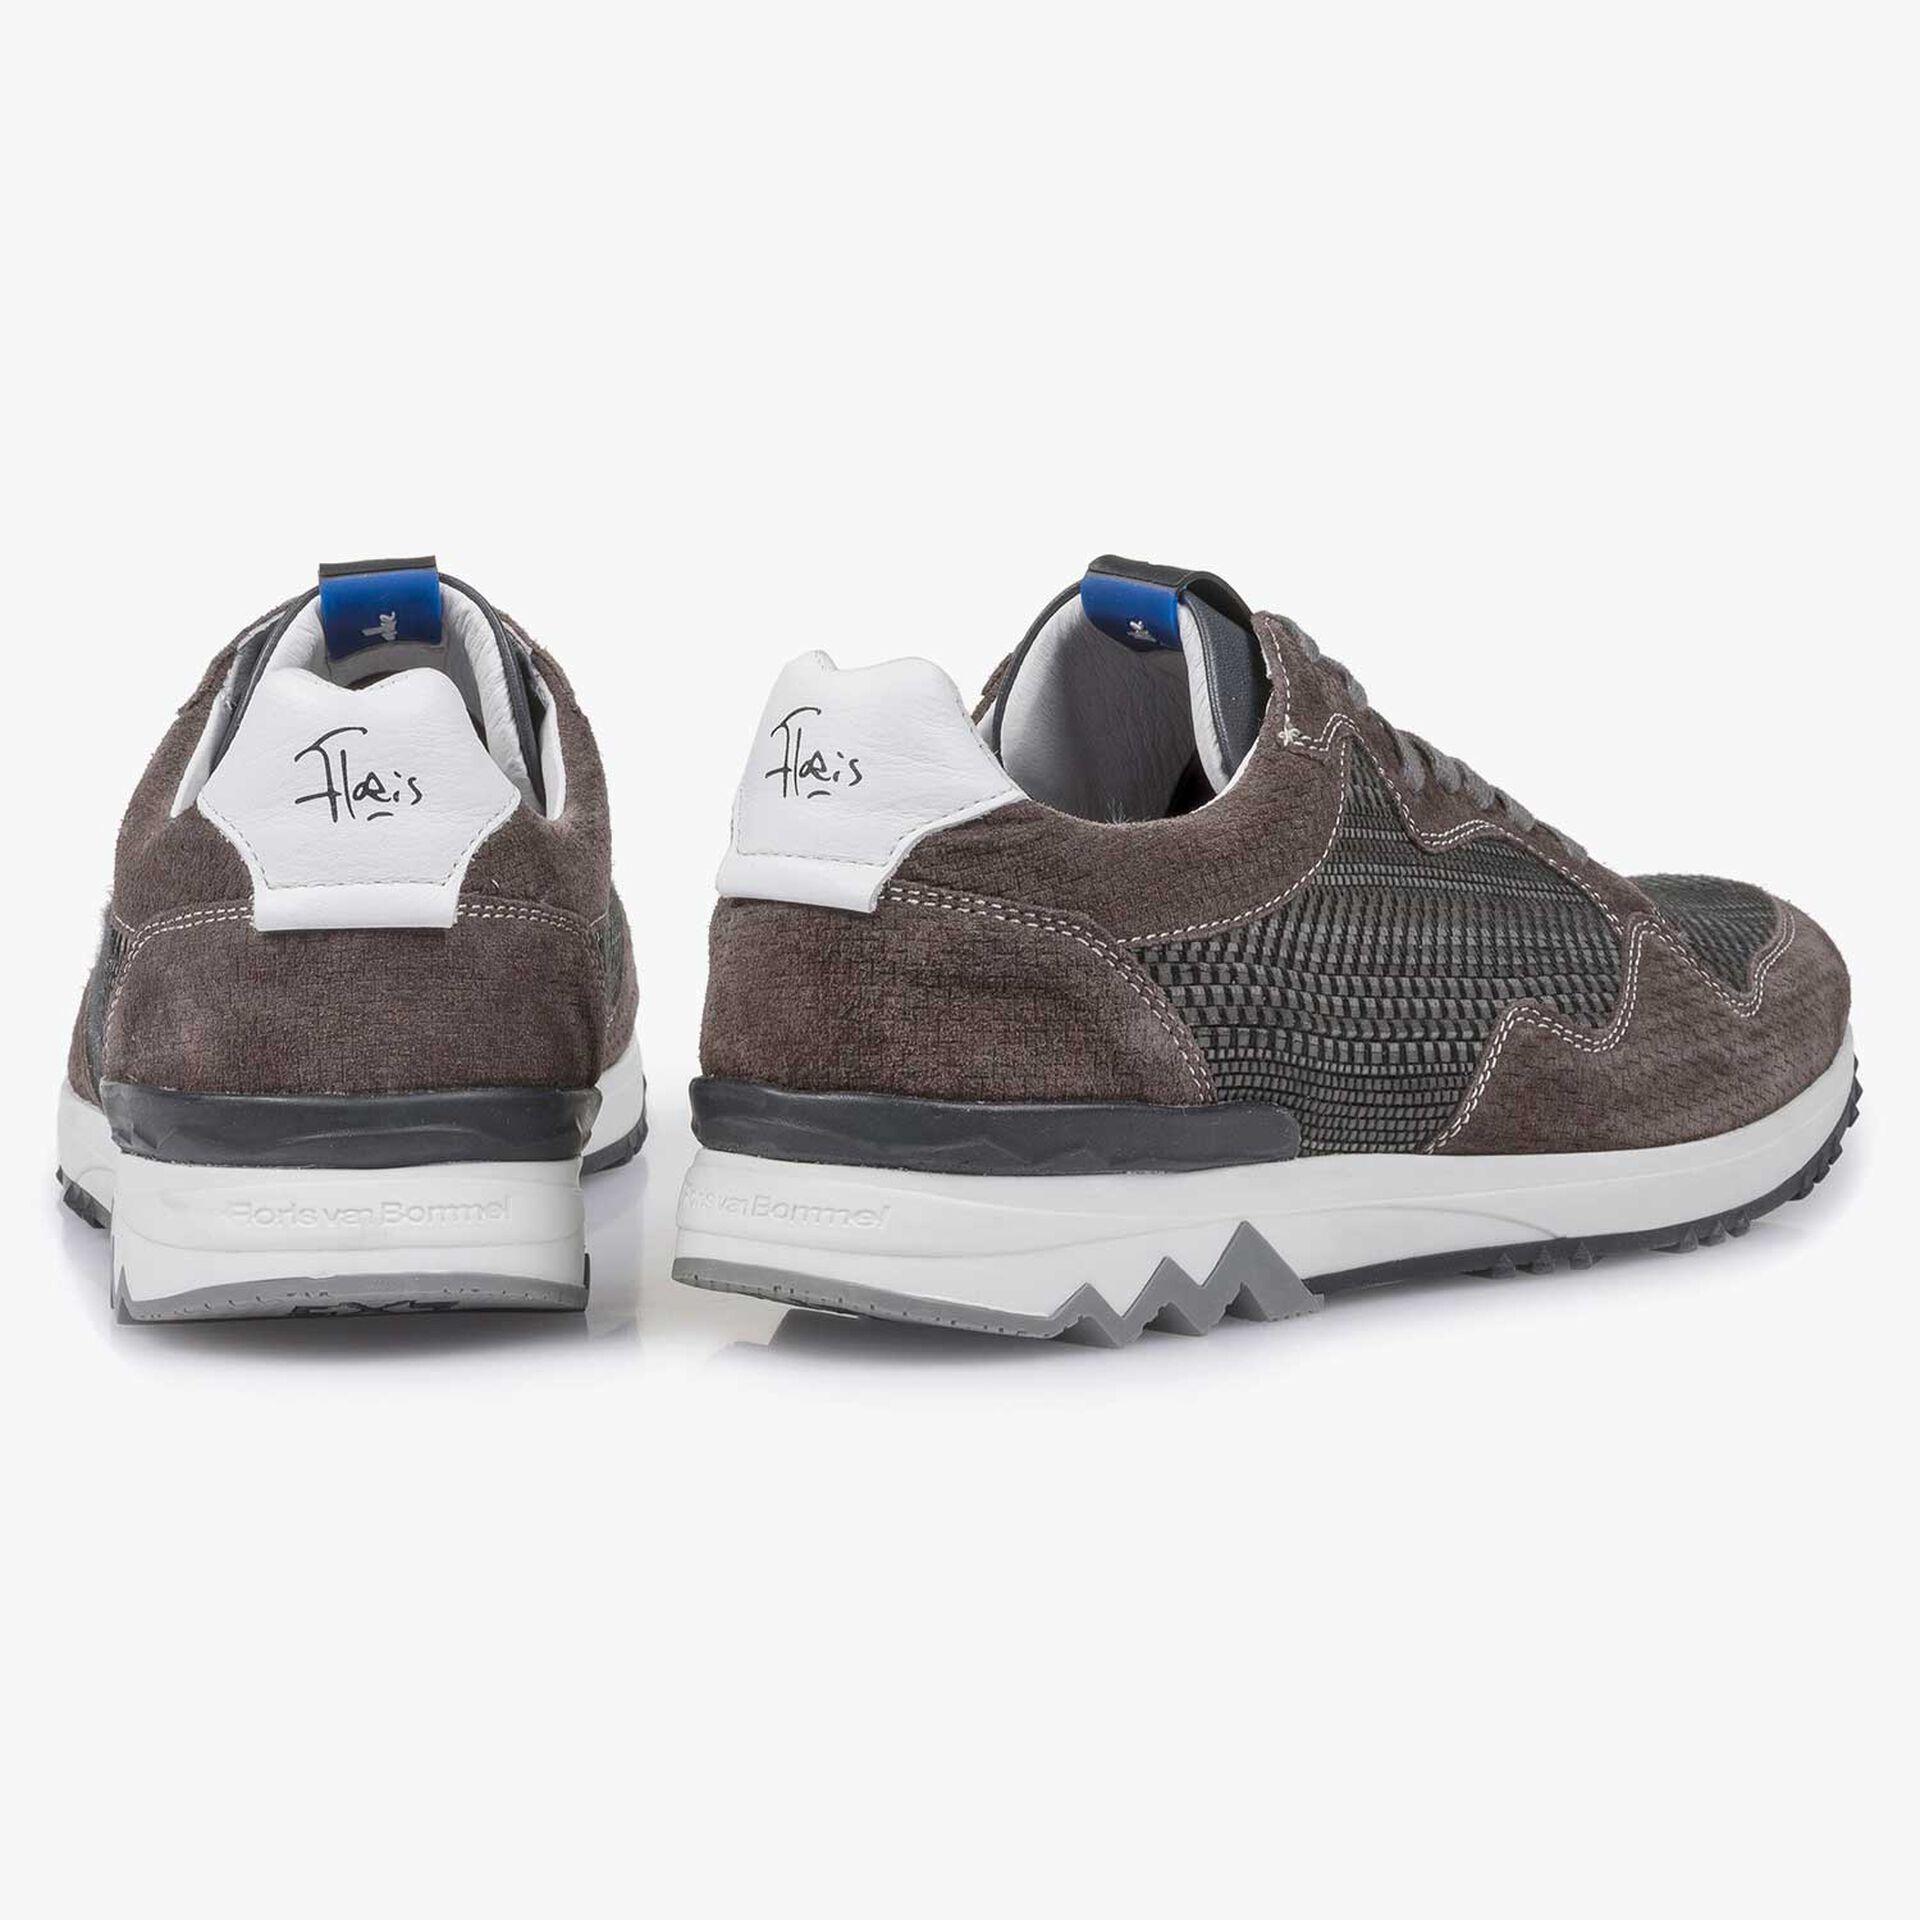 Grey suede leather sneaker with a pattern